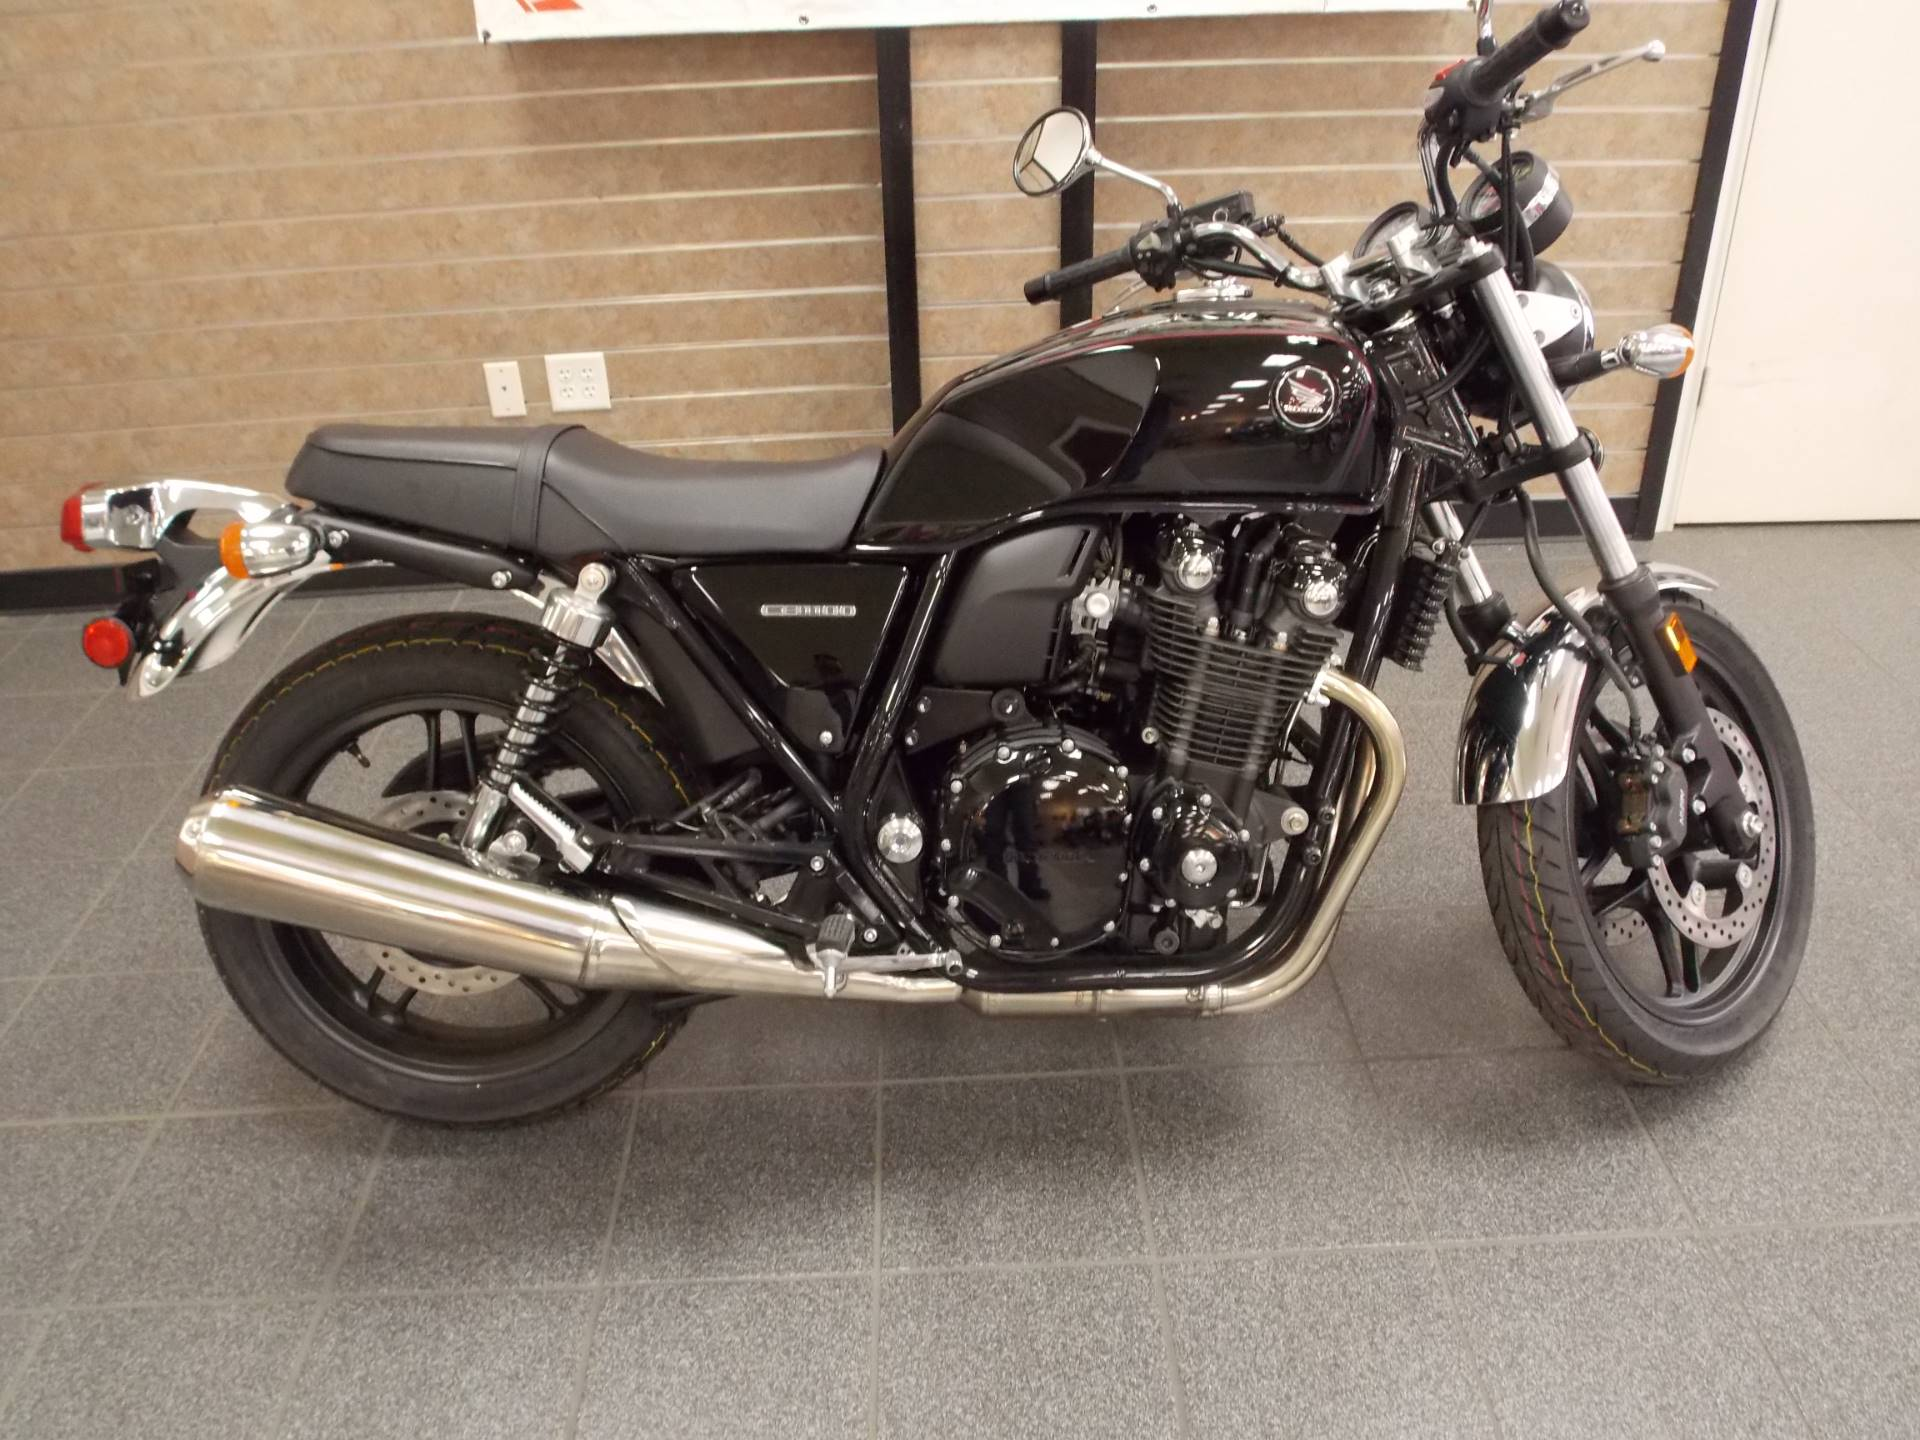 2014 Honda CB1100 in Texarkana, Texas